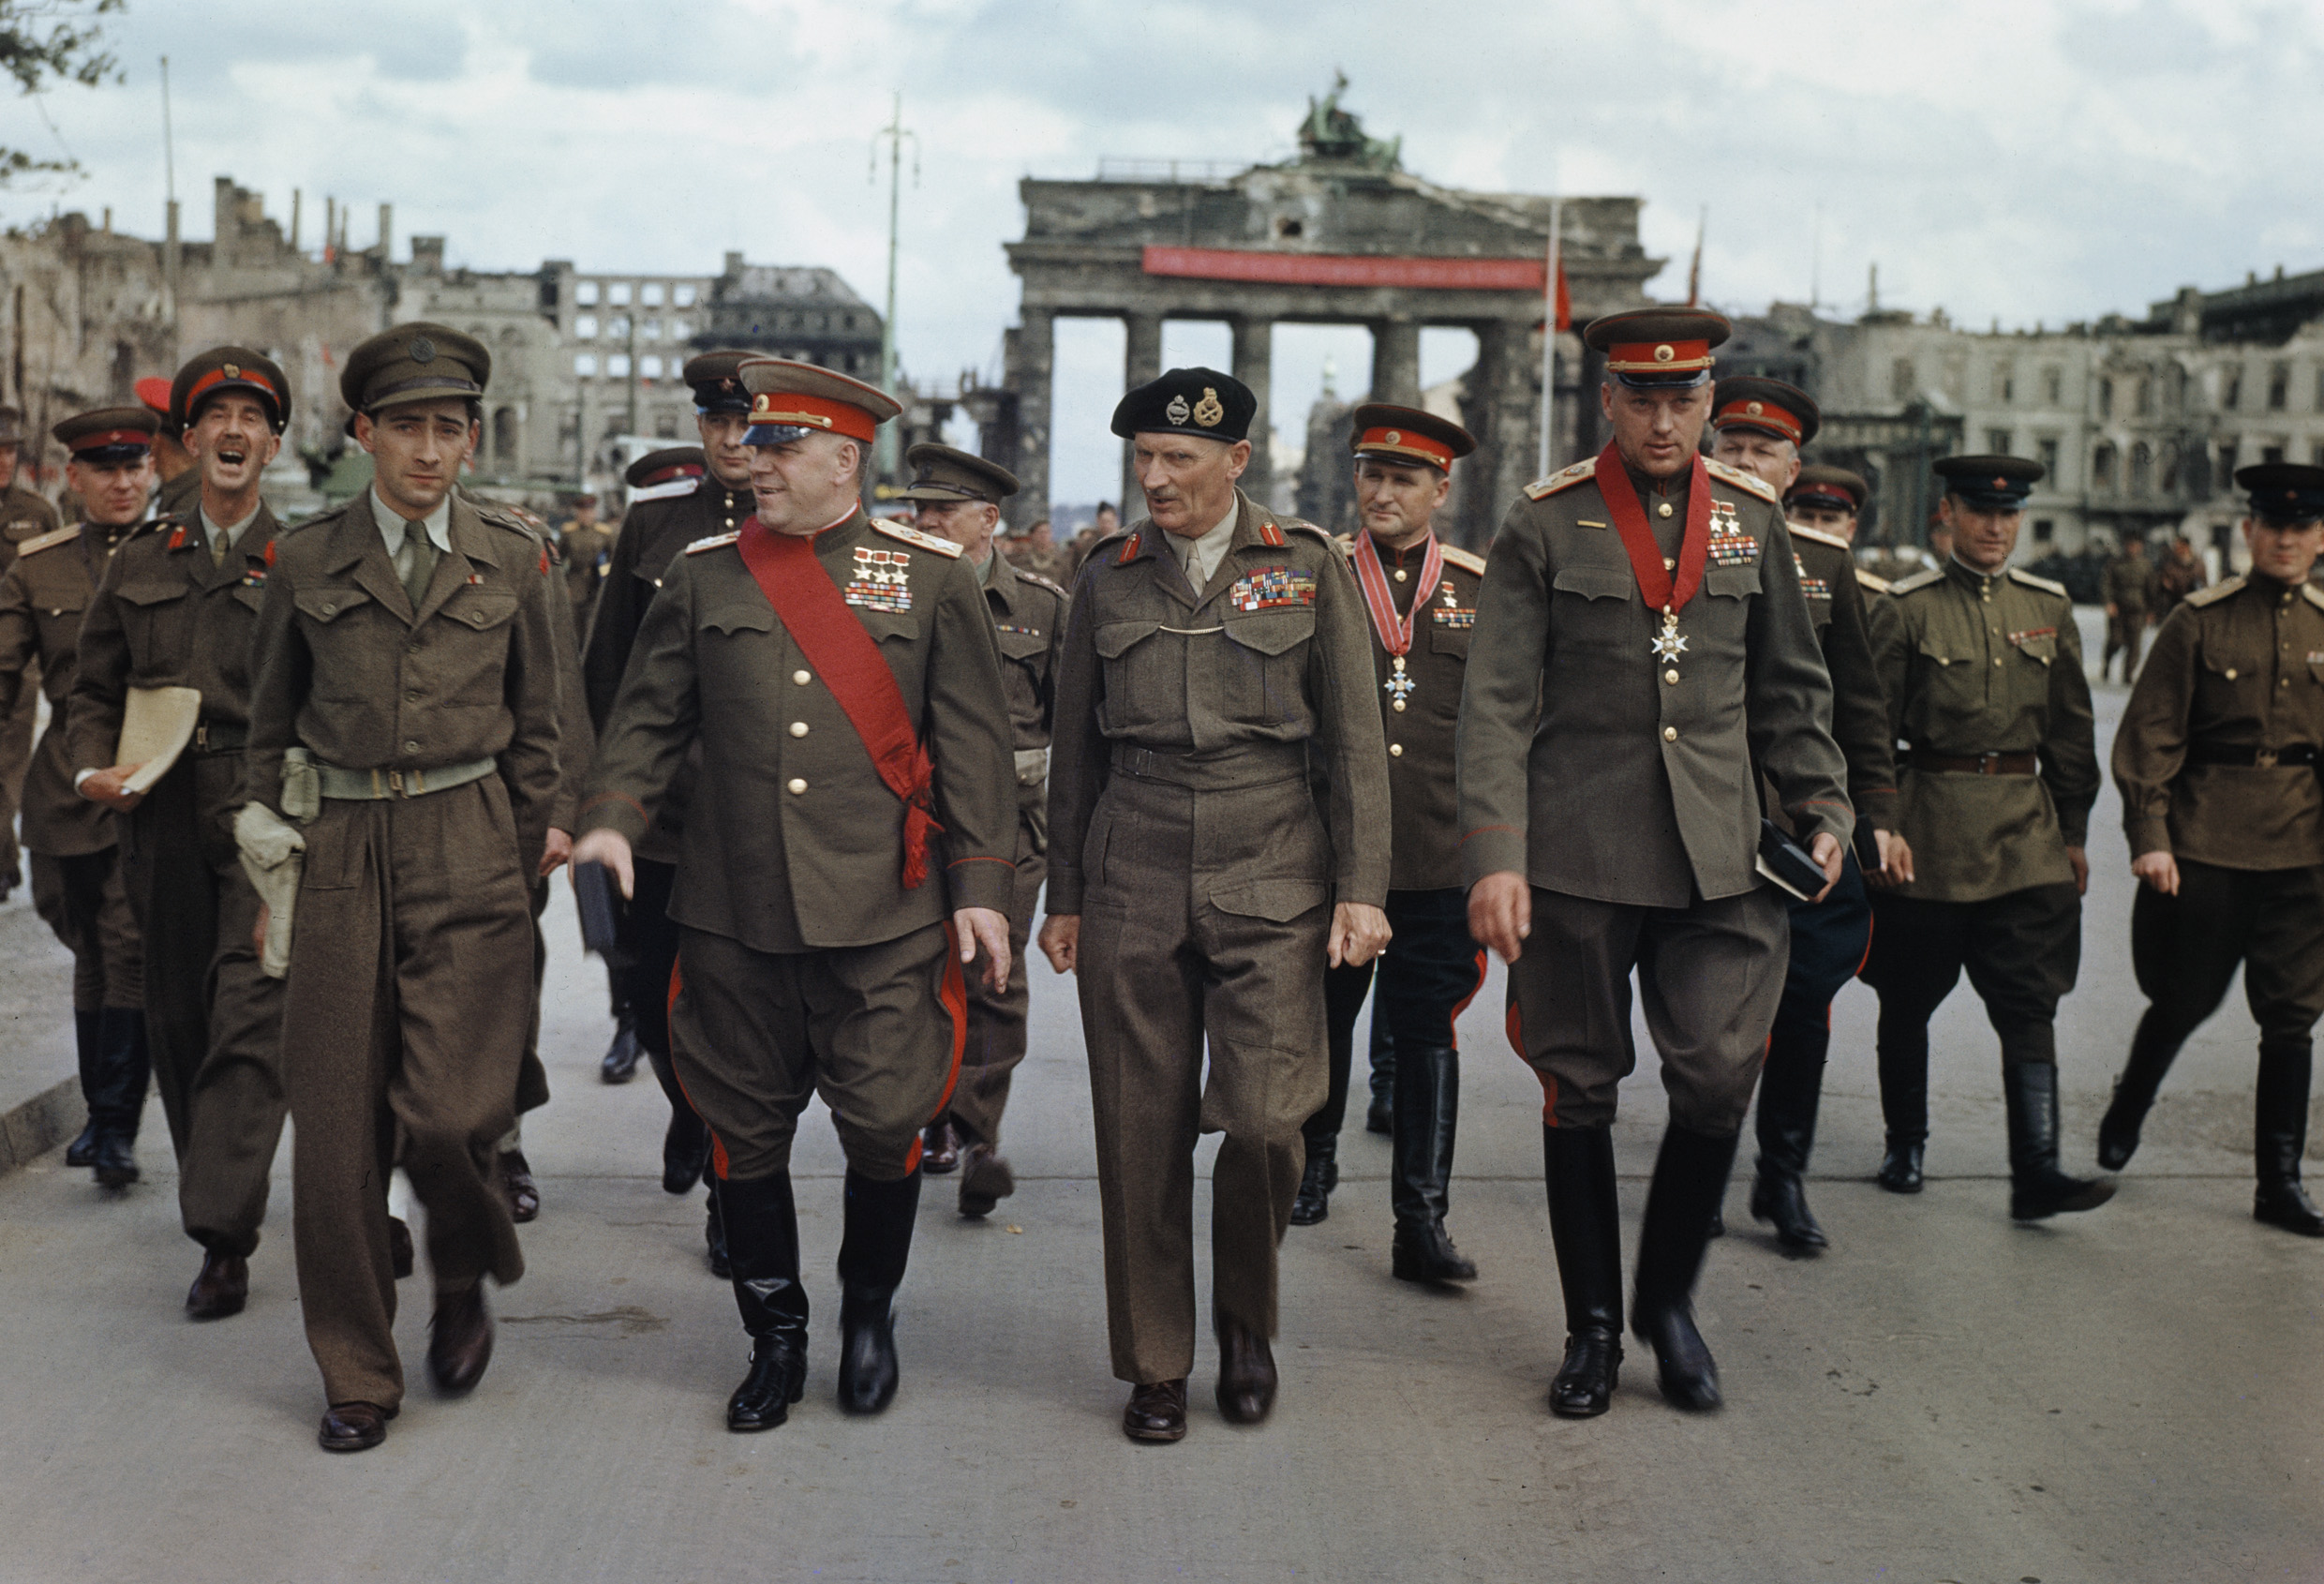 File:Allies at the Brandenburg Gate, 1945.jpg